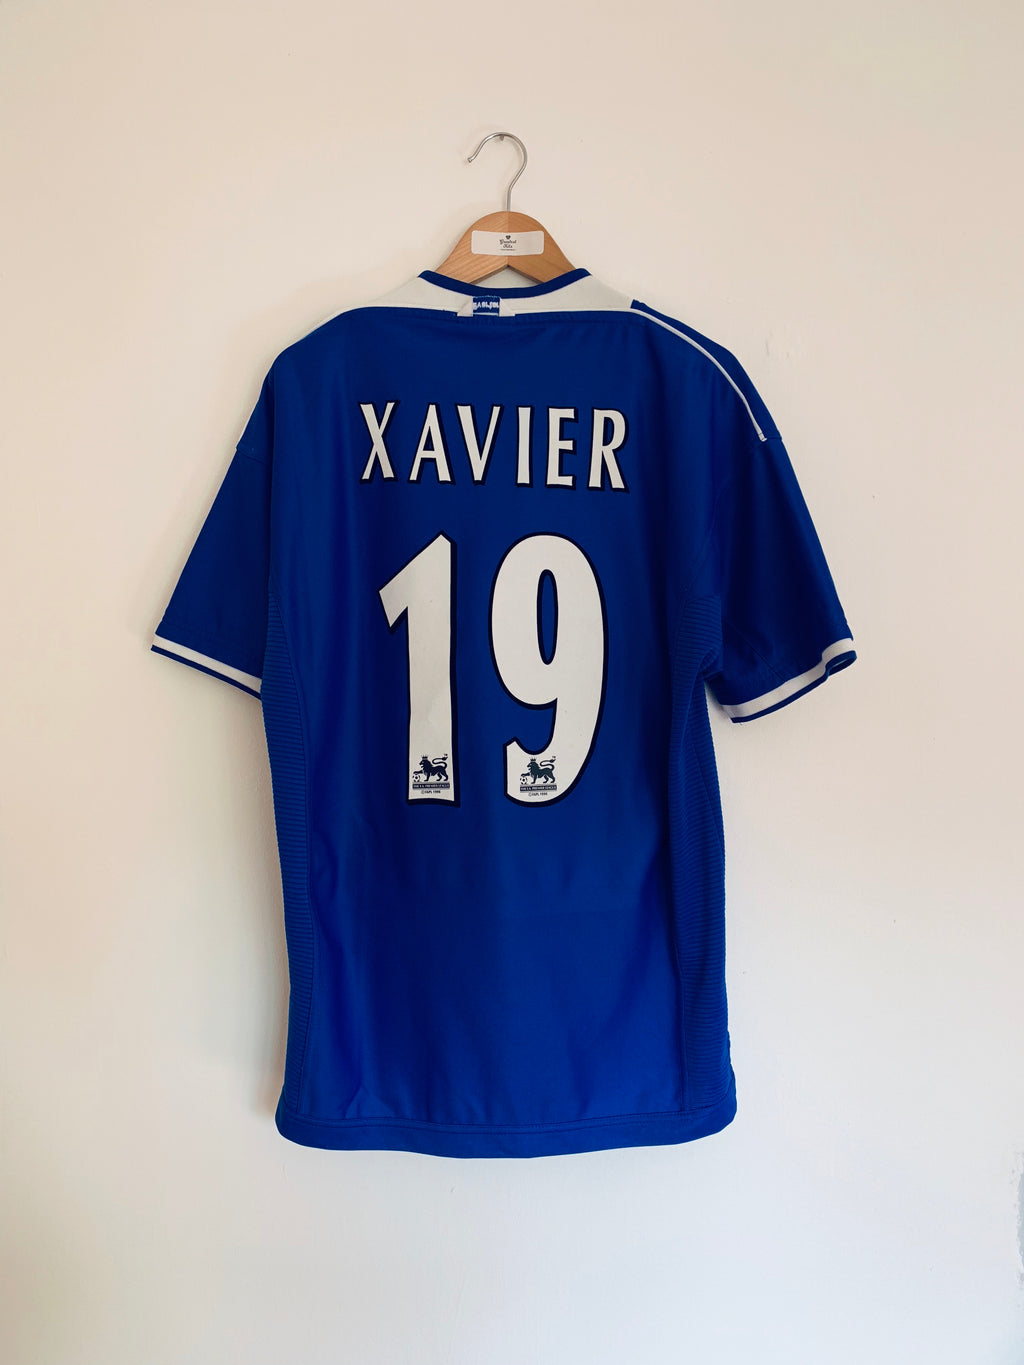 1999/00 Everton Home Shirt Xavier #19 (L) 9.5/10